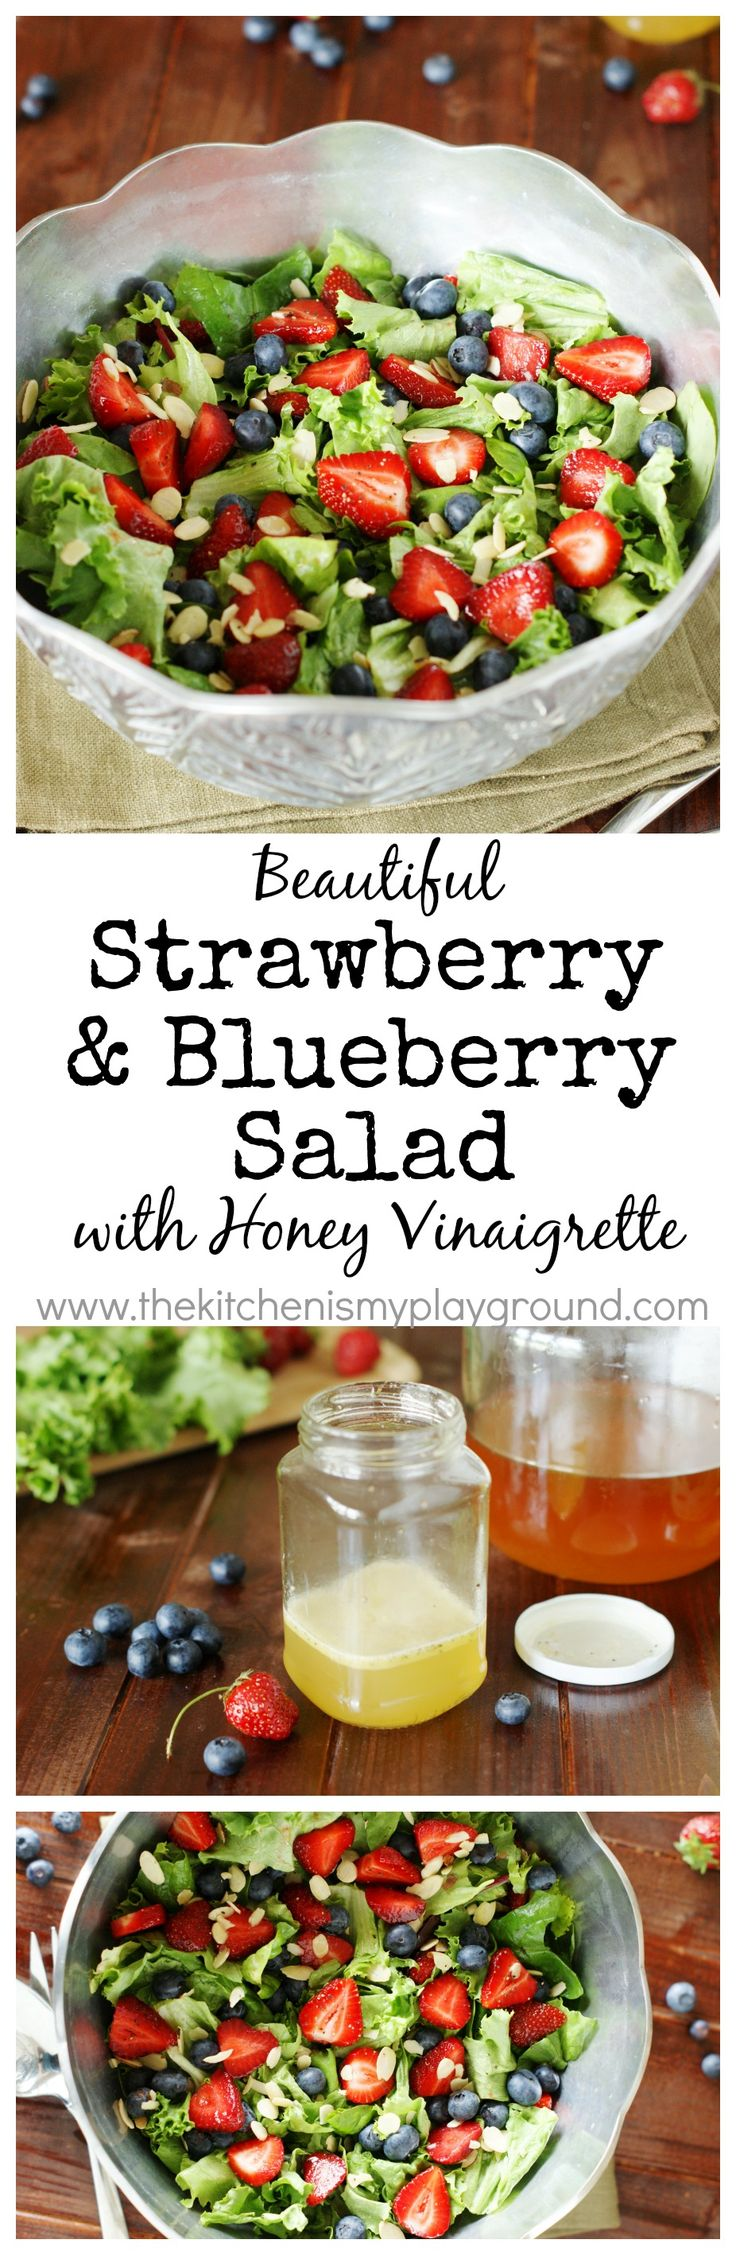 Strawberry, Blueberry & Greens Salad with Honey Vinaigrette ~ as tasty as it is beautiful! #strawberries #blueberries #salad www.thekitchenismyplayground.com